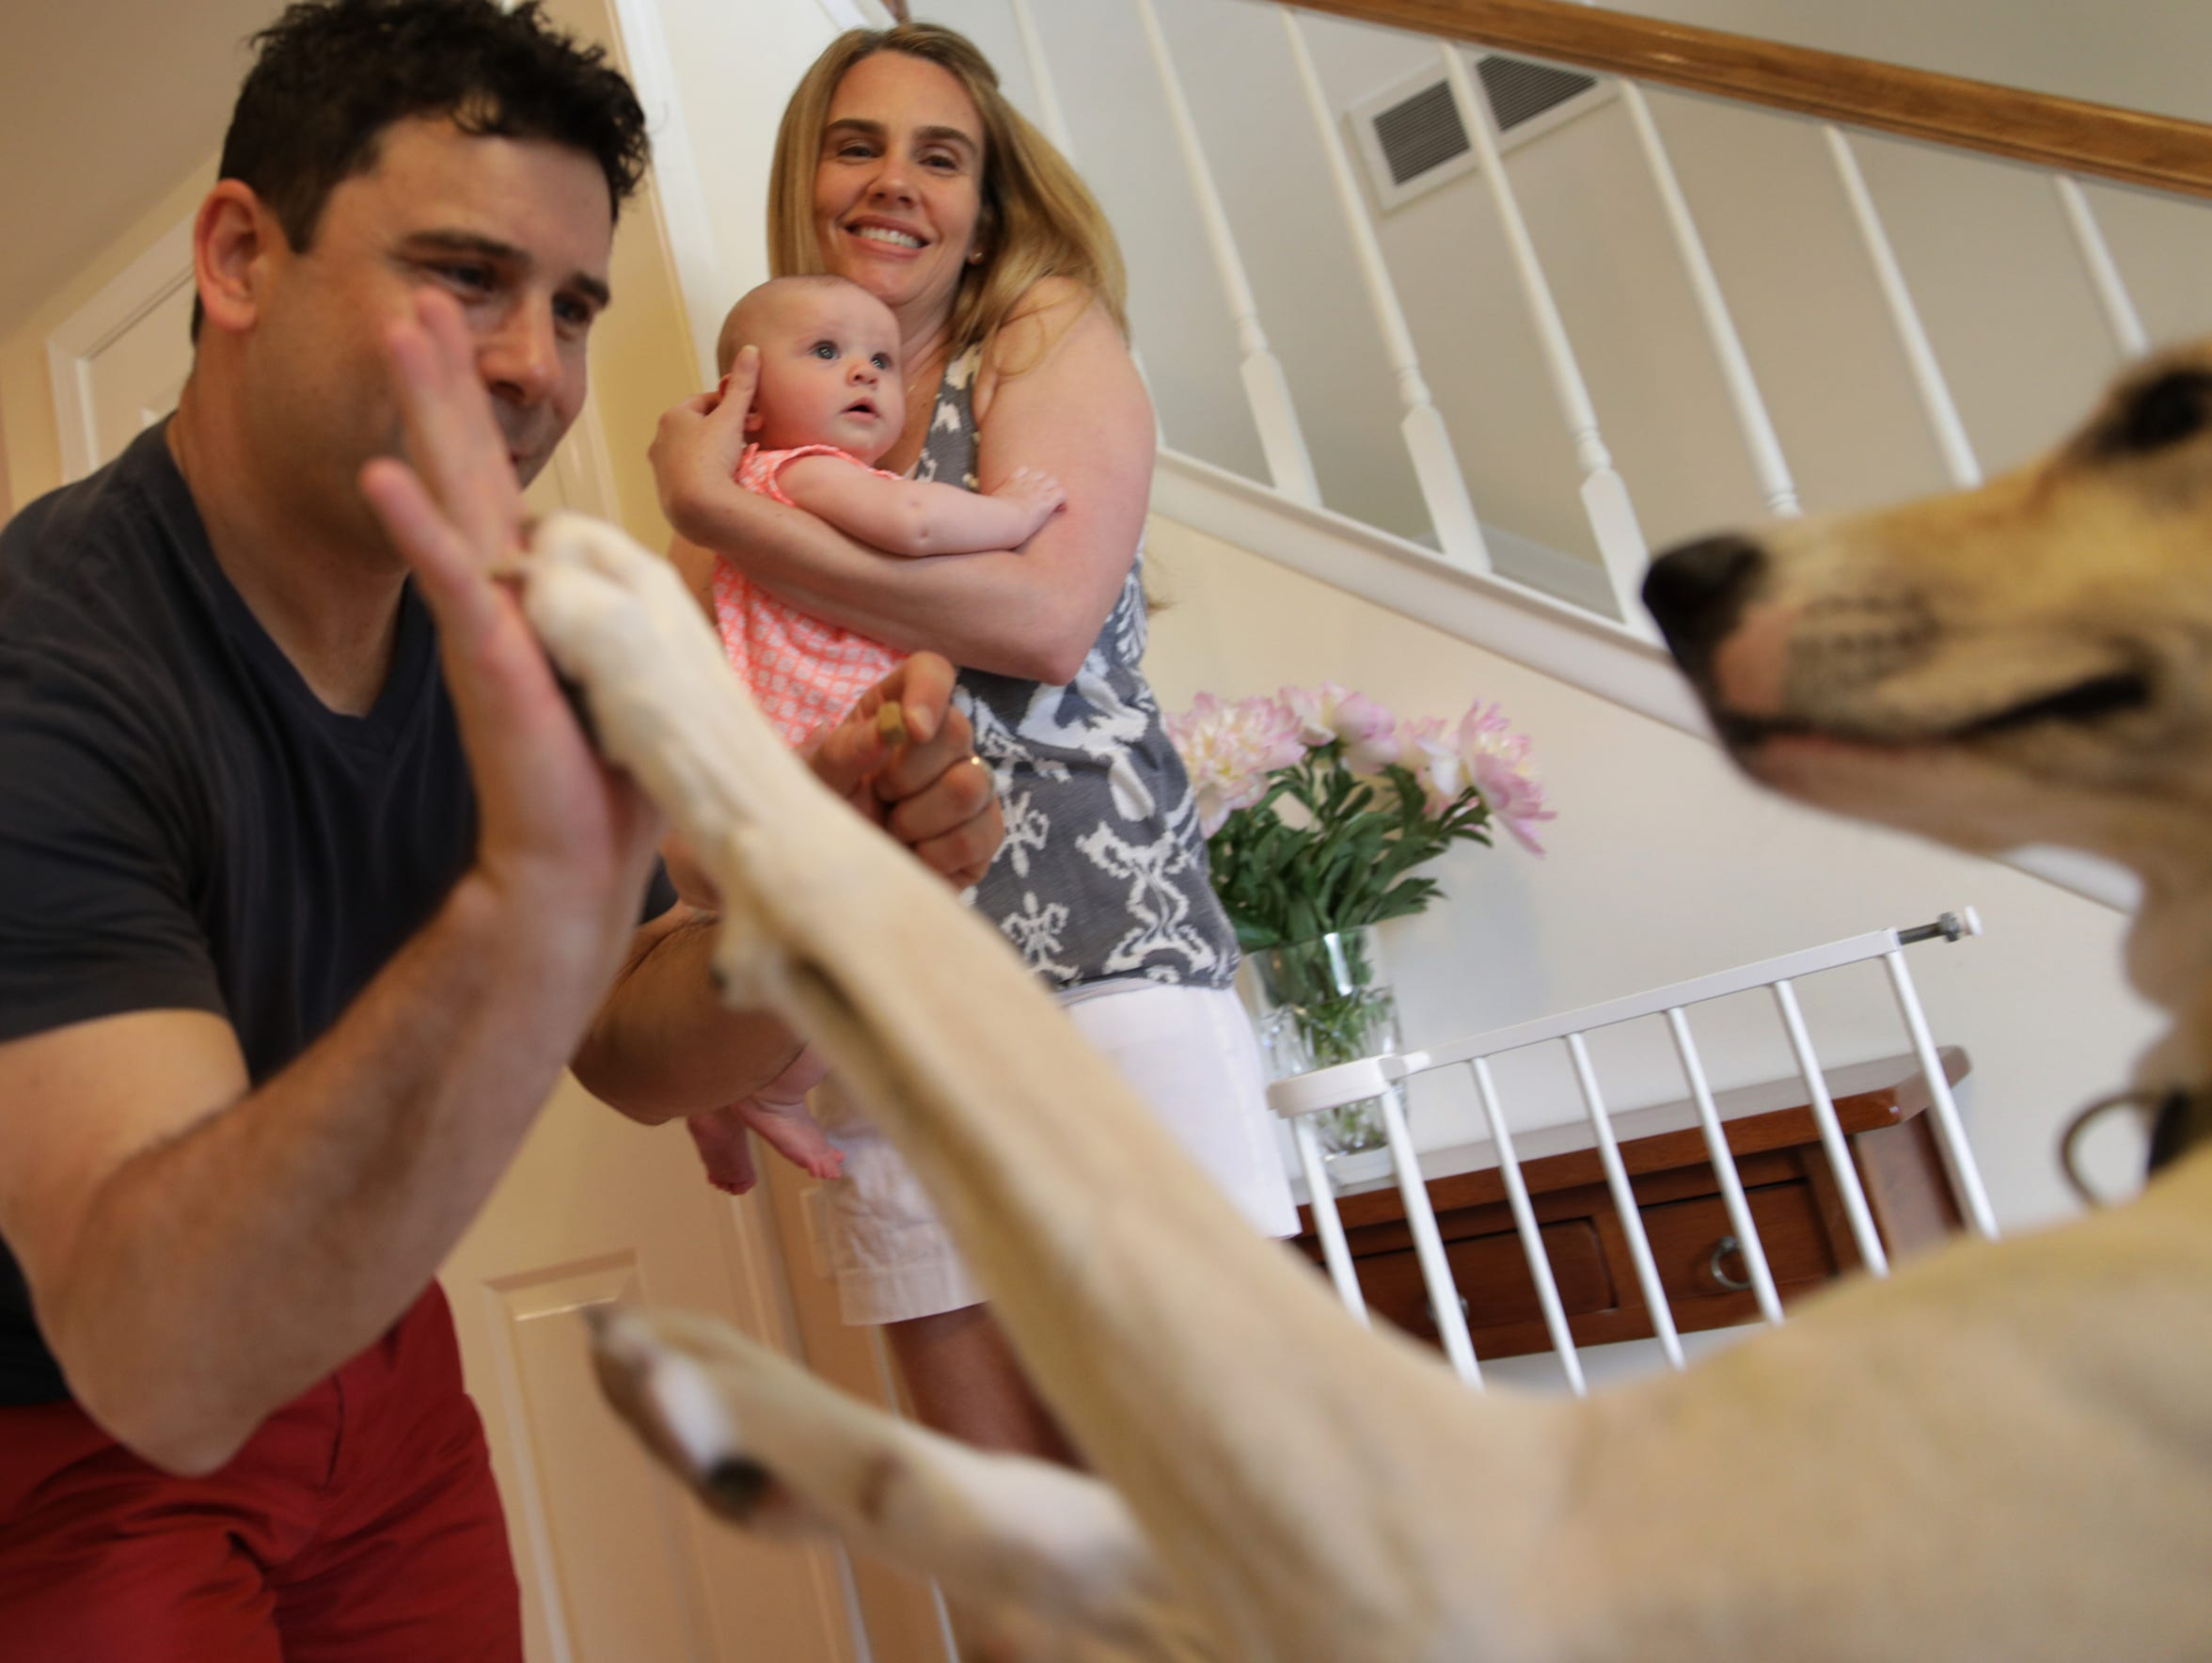 Julie D'Angelo and baby Briar look on as Frank D'Angelo high-fives their dog at their home in Northville on Friday, June 8, 2018.